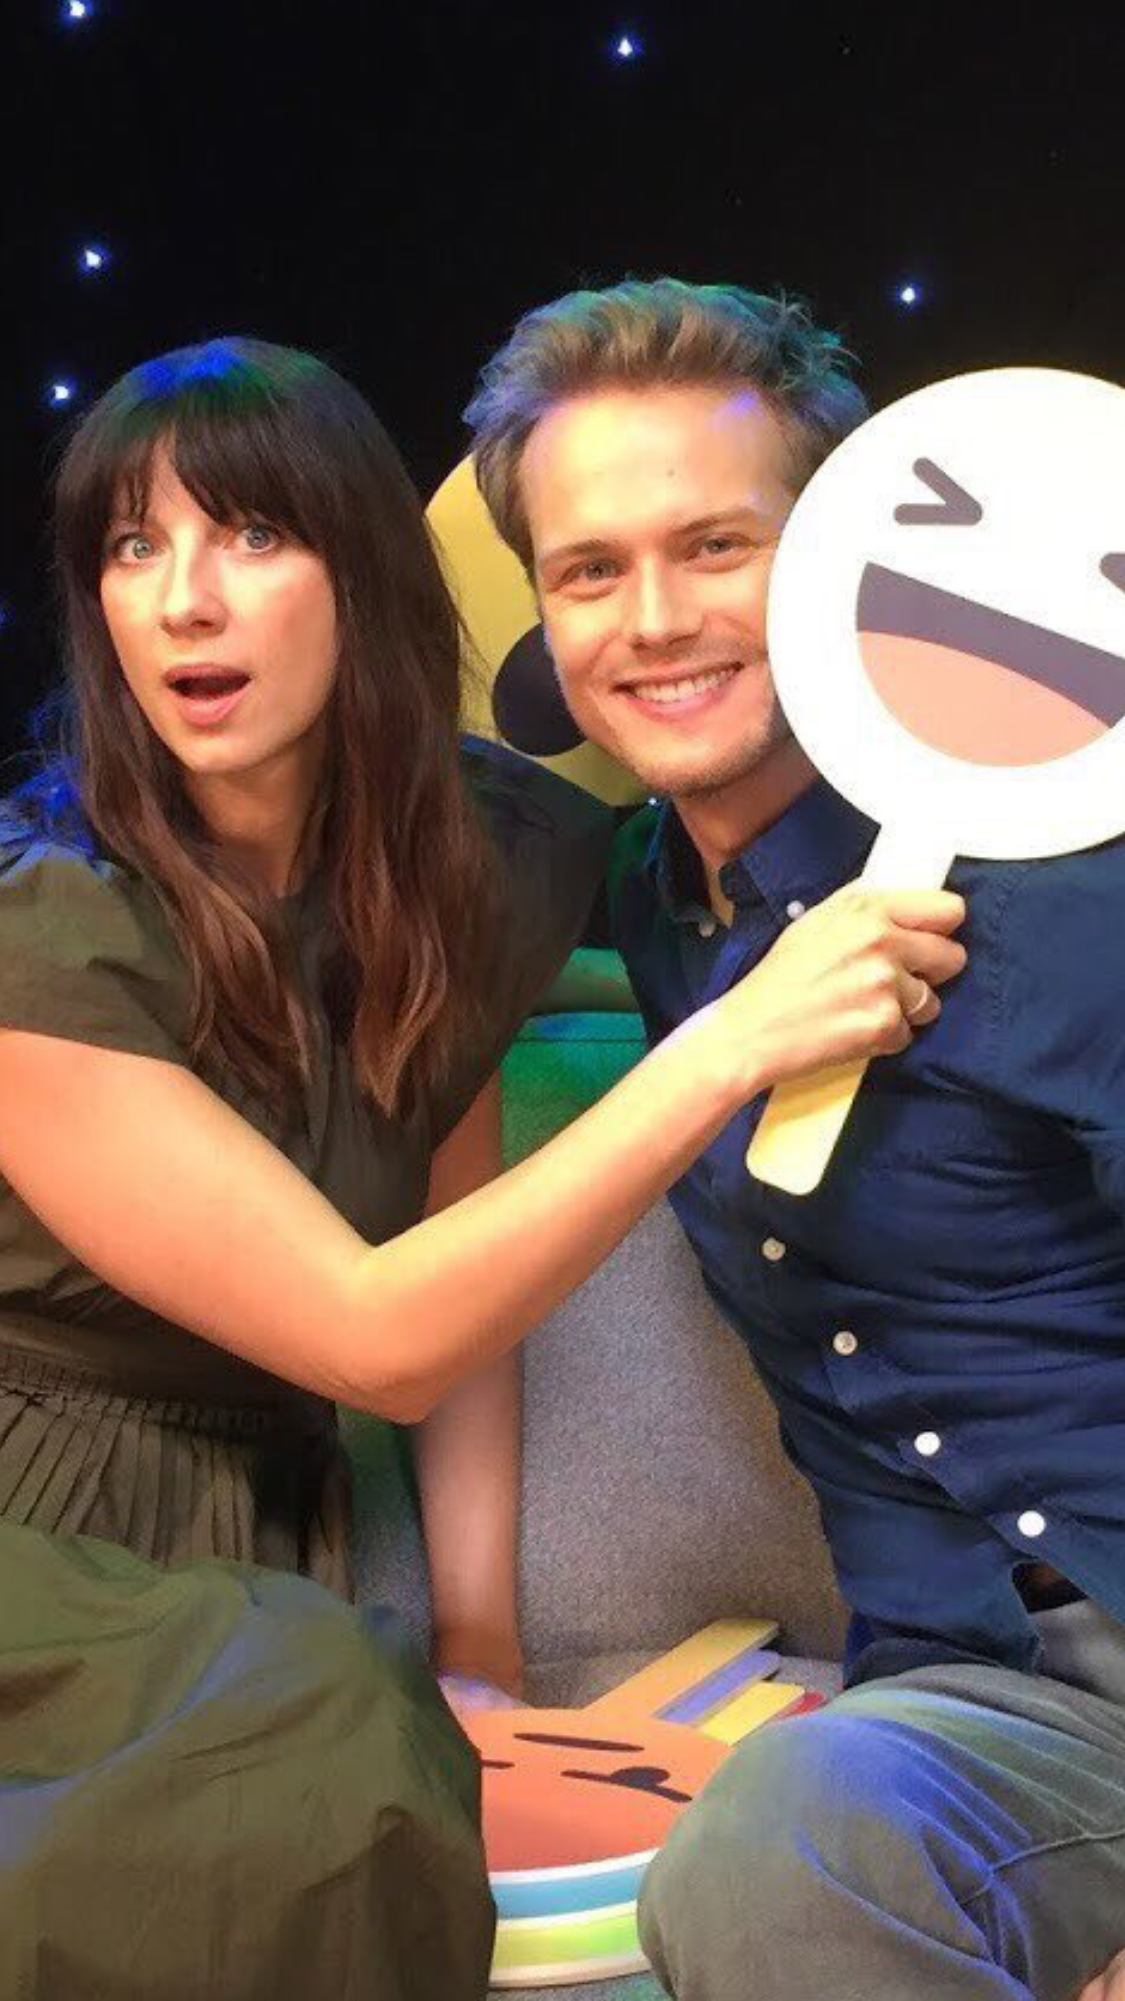 Sam & Cait's Facebook Q&A - They are so darned fun to watch